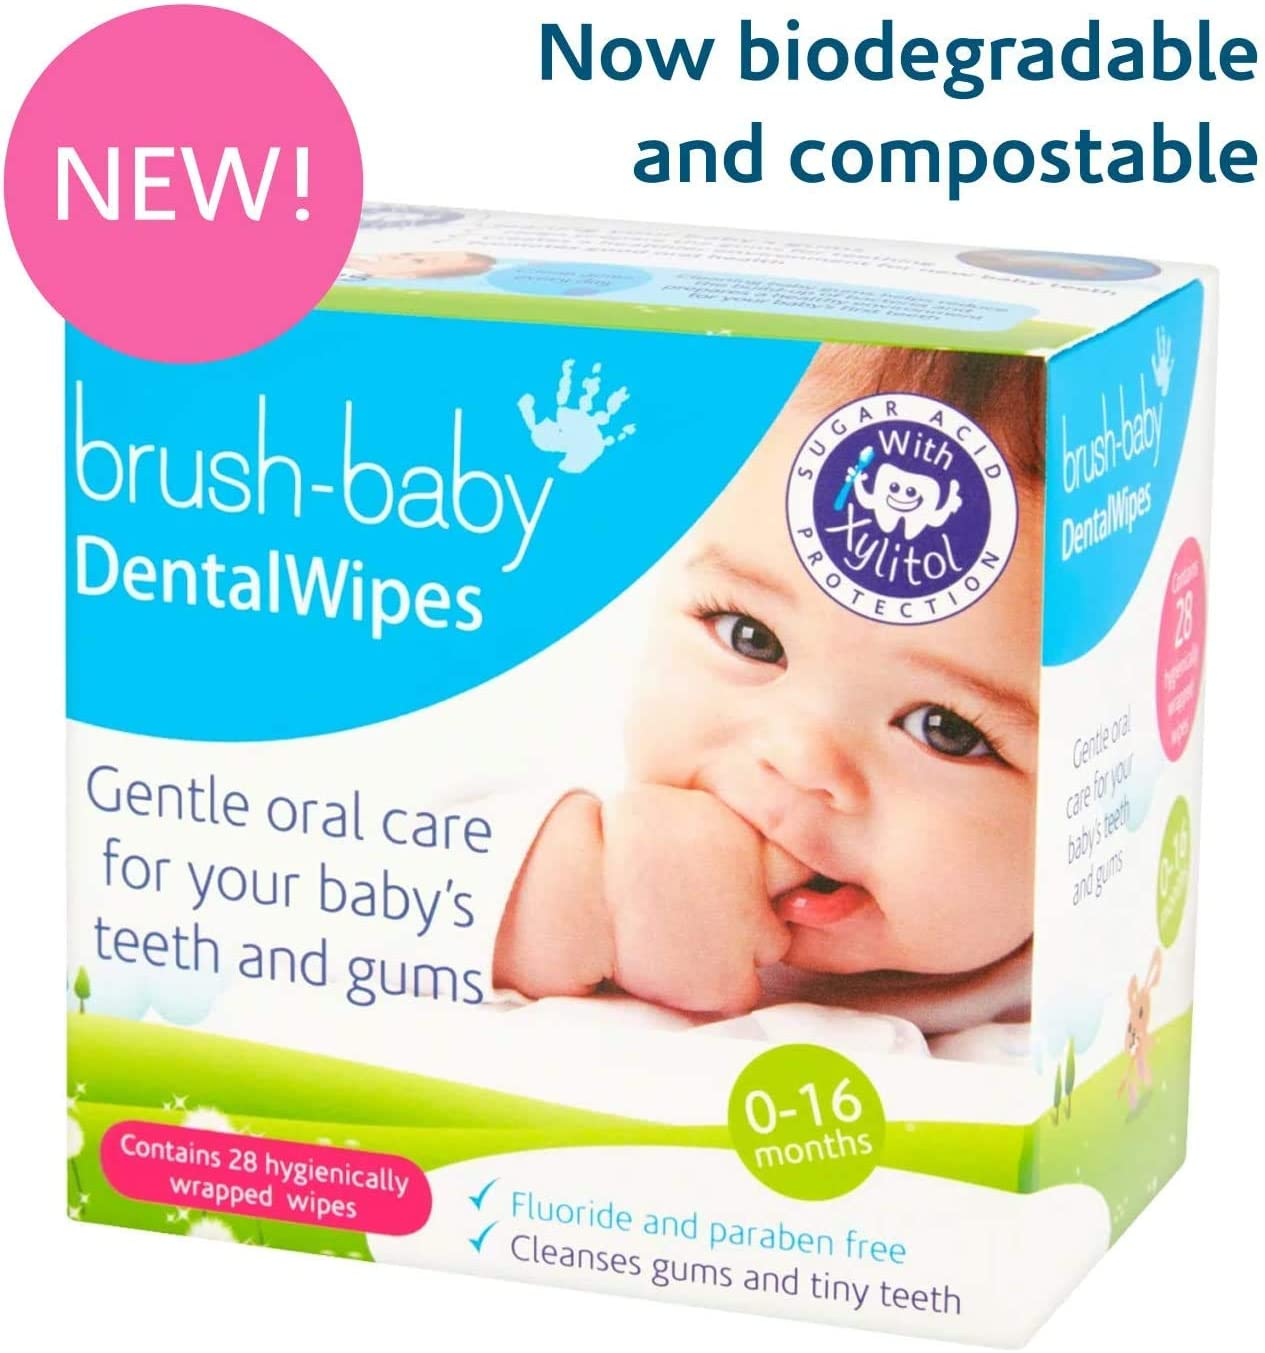 Brush-Baby DentalWipes for Babies | Stage 1 Birth - First Teeth | Suitable  from 0-16 Months | Soft Wipes to Gently Clean Your Baby's Mouth, Gums and  Tongue | 1 Pack of